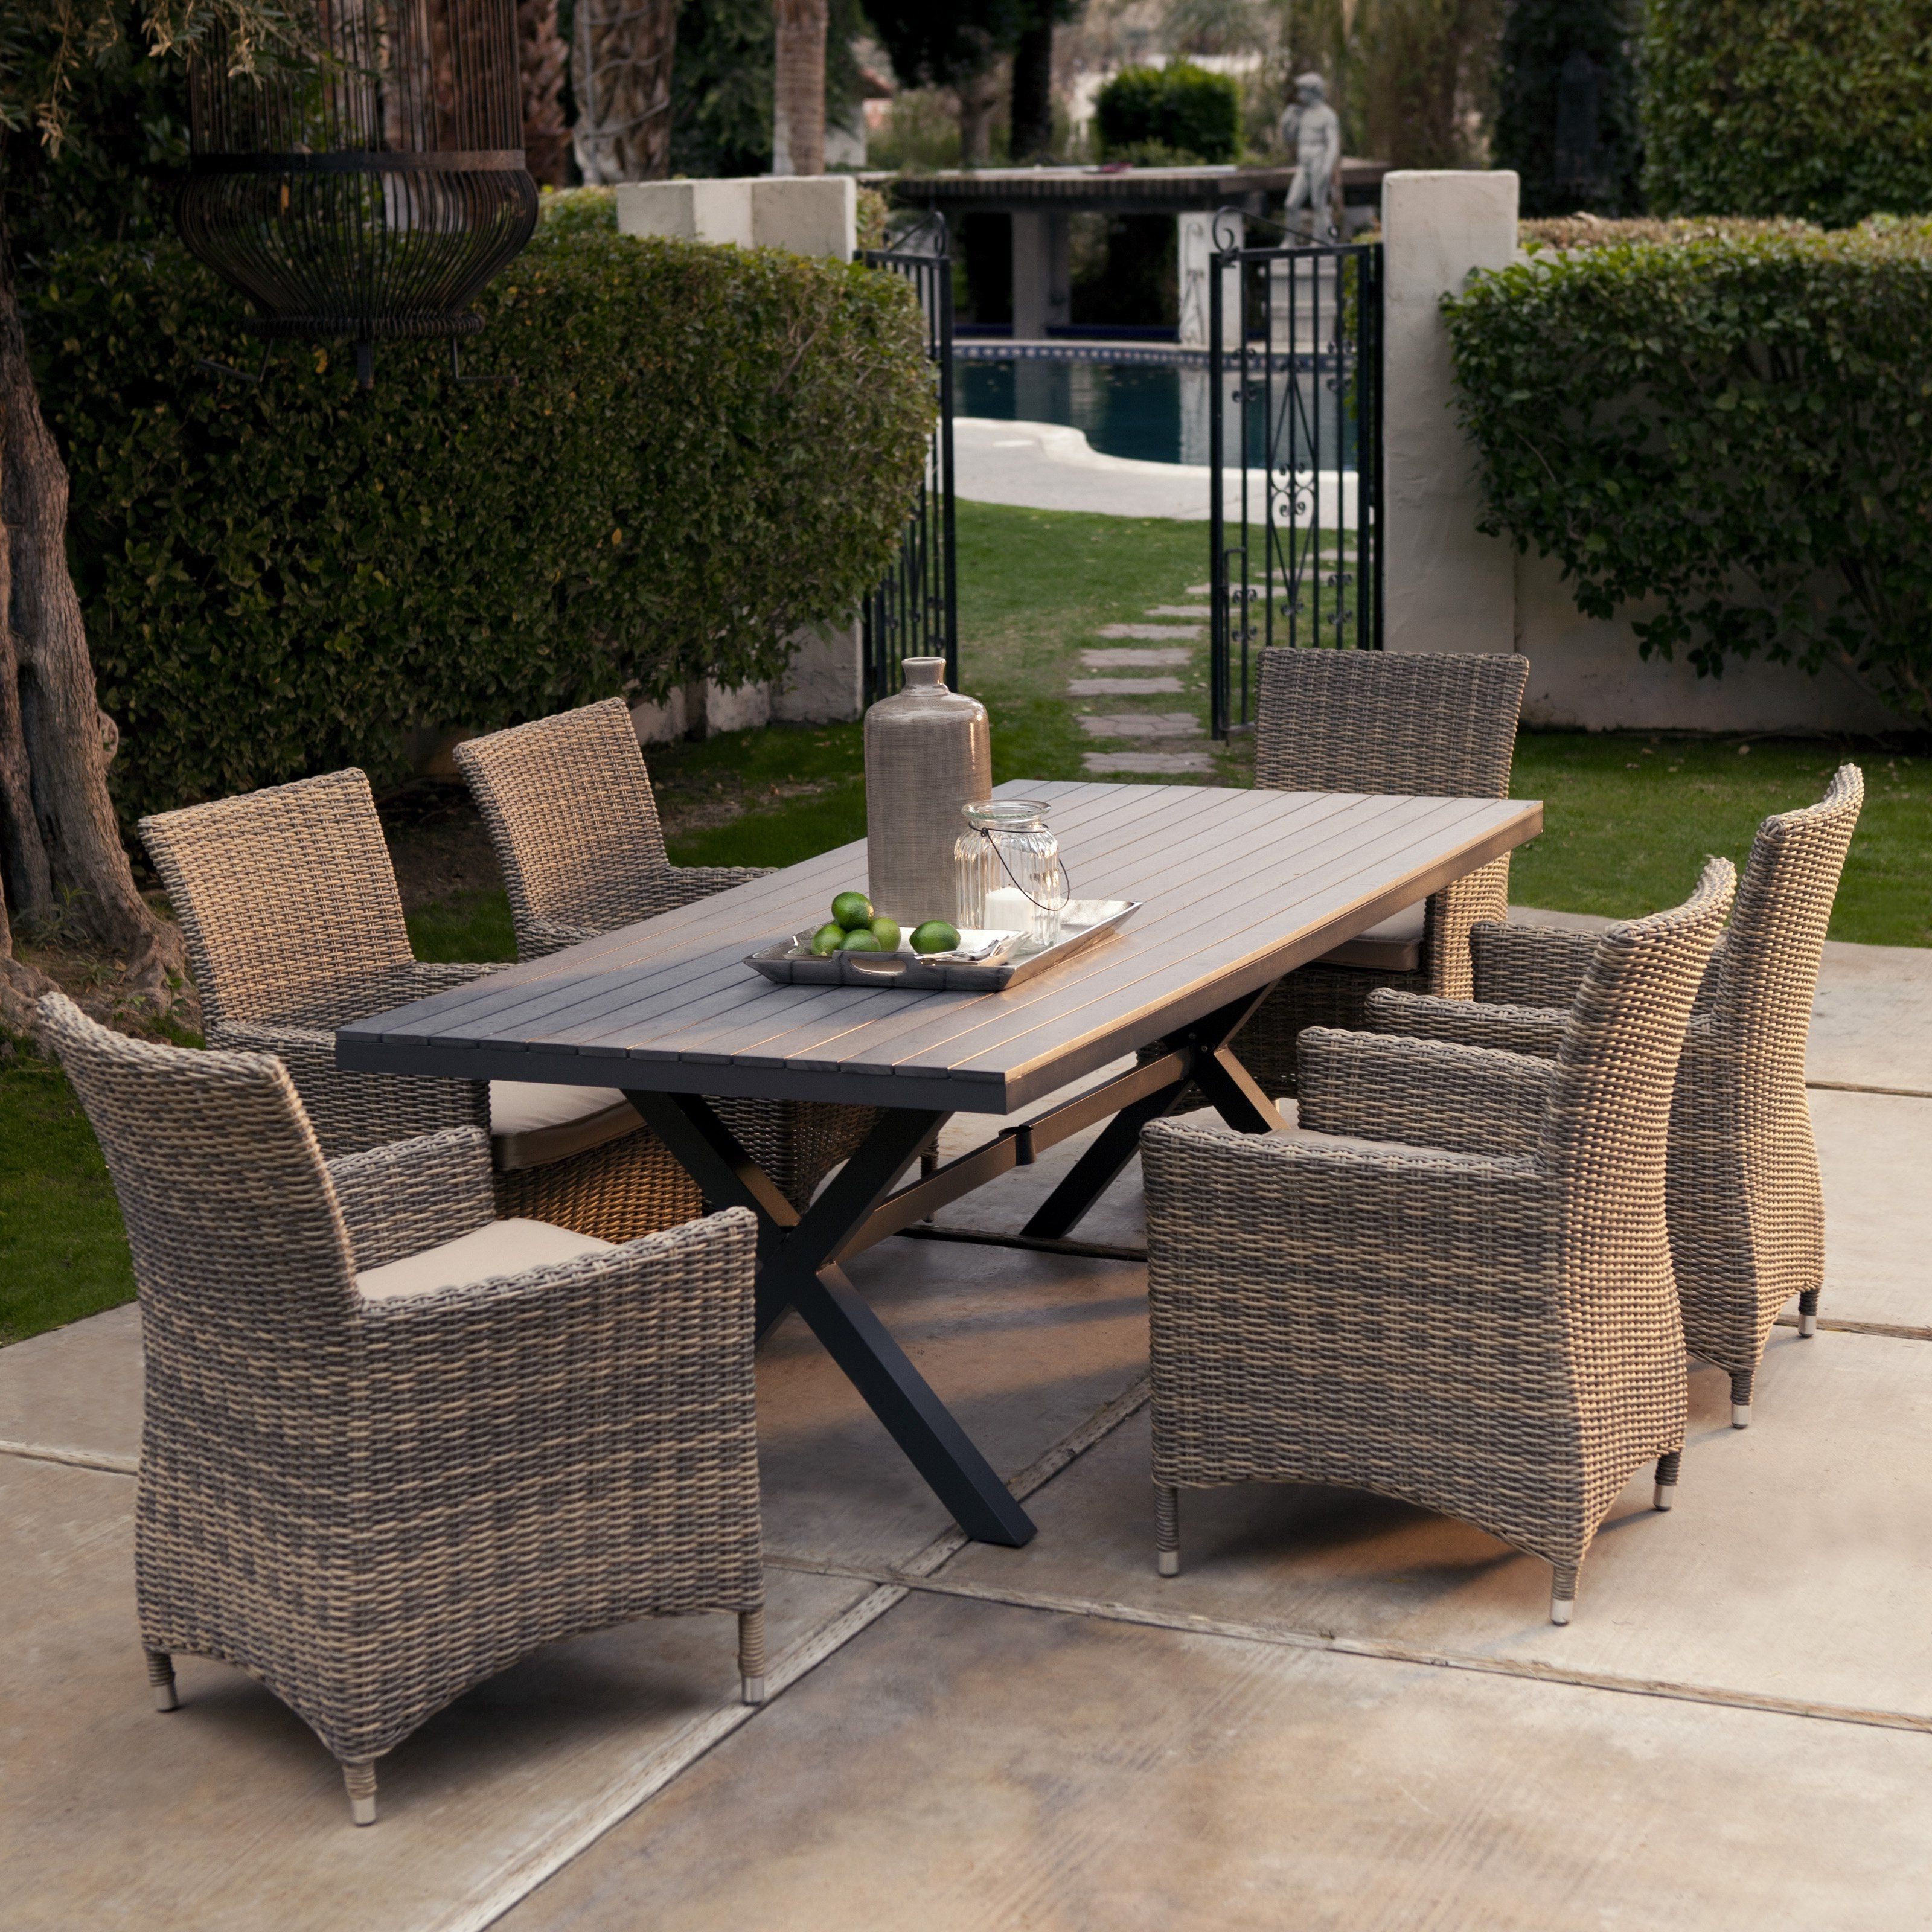 Most Current Bella All Weather Wicker Patio Dining Set – Seats 6 – Patio Dining For Outdoor Dining Table And Chairs Sets (View 7 of 25)